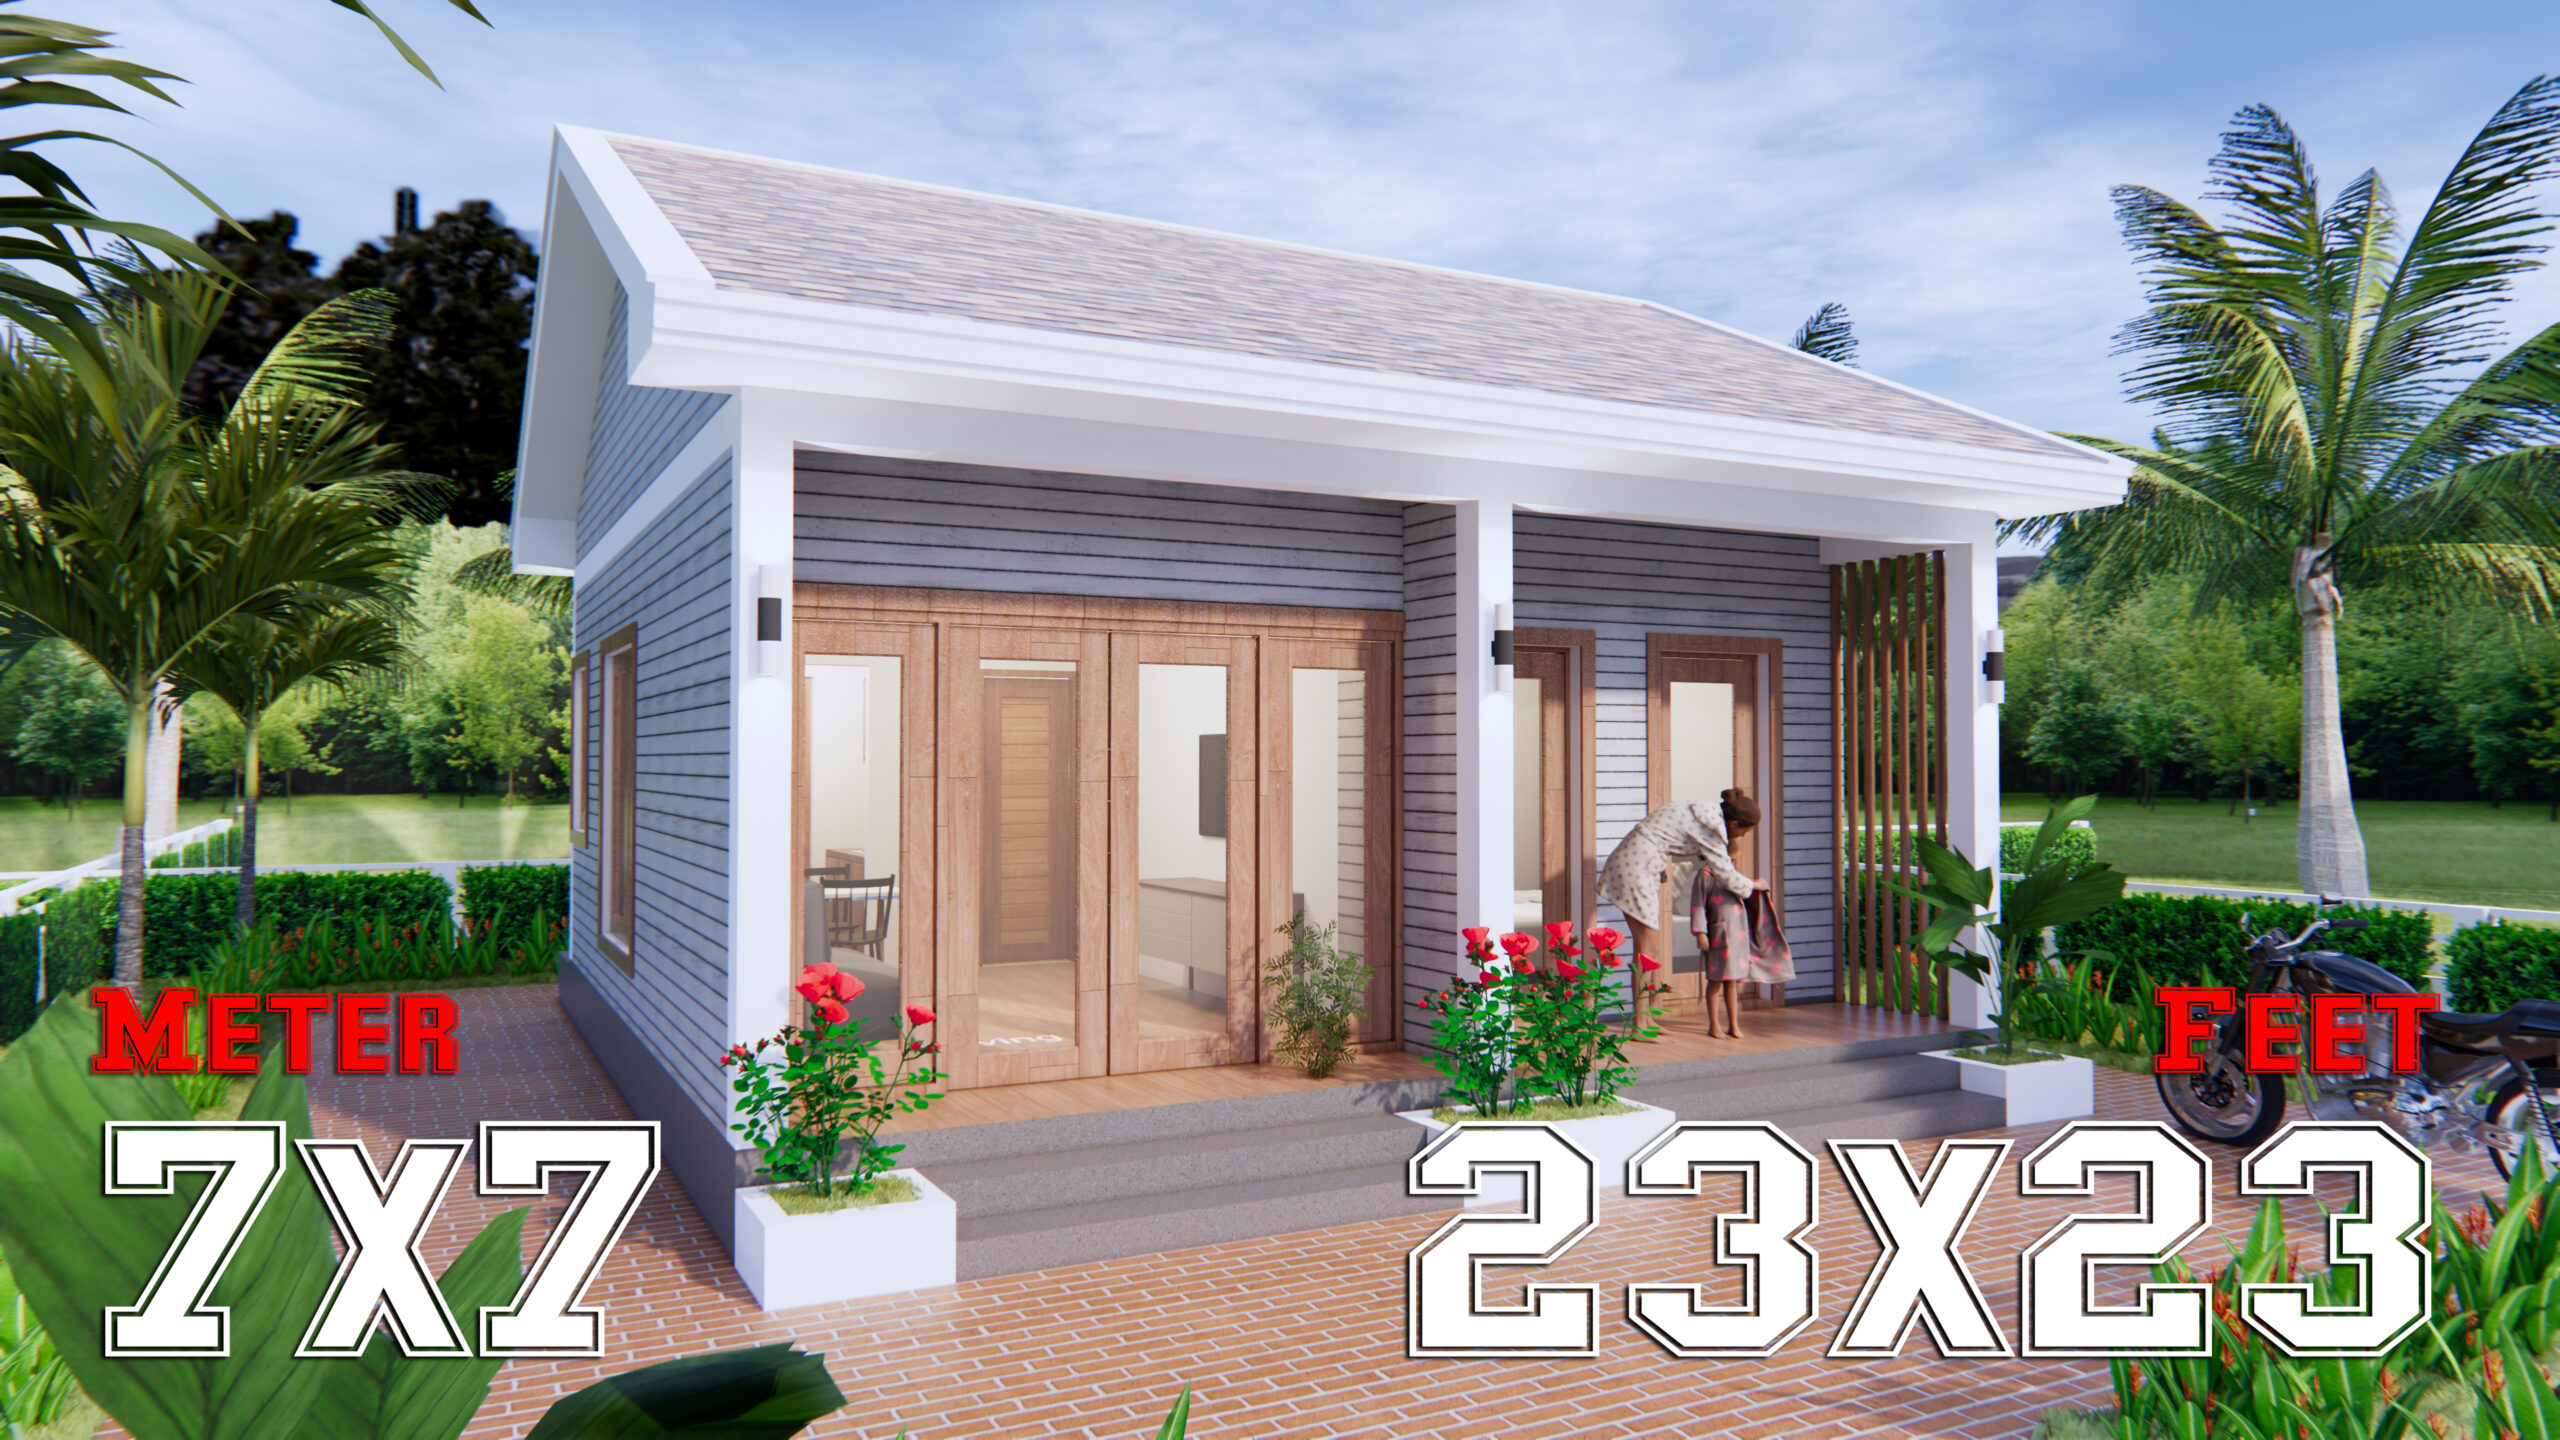 Small House Design 7x7 Meter 23x23 Feet Gable Roof scaled - Get Small New Houses Design Gif